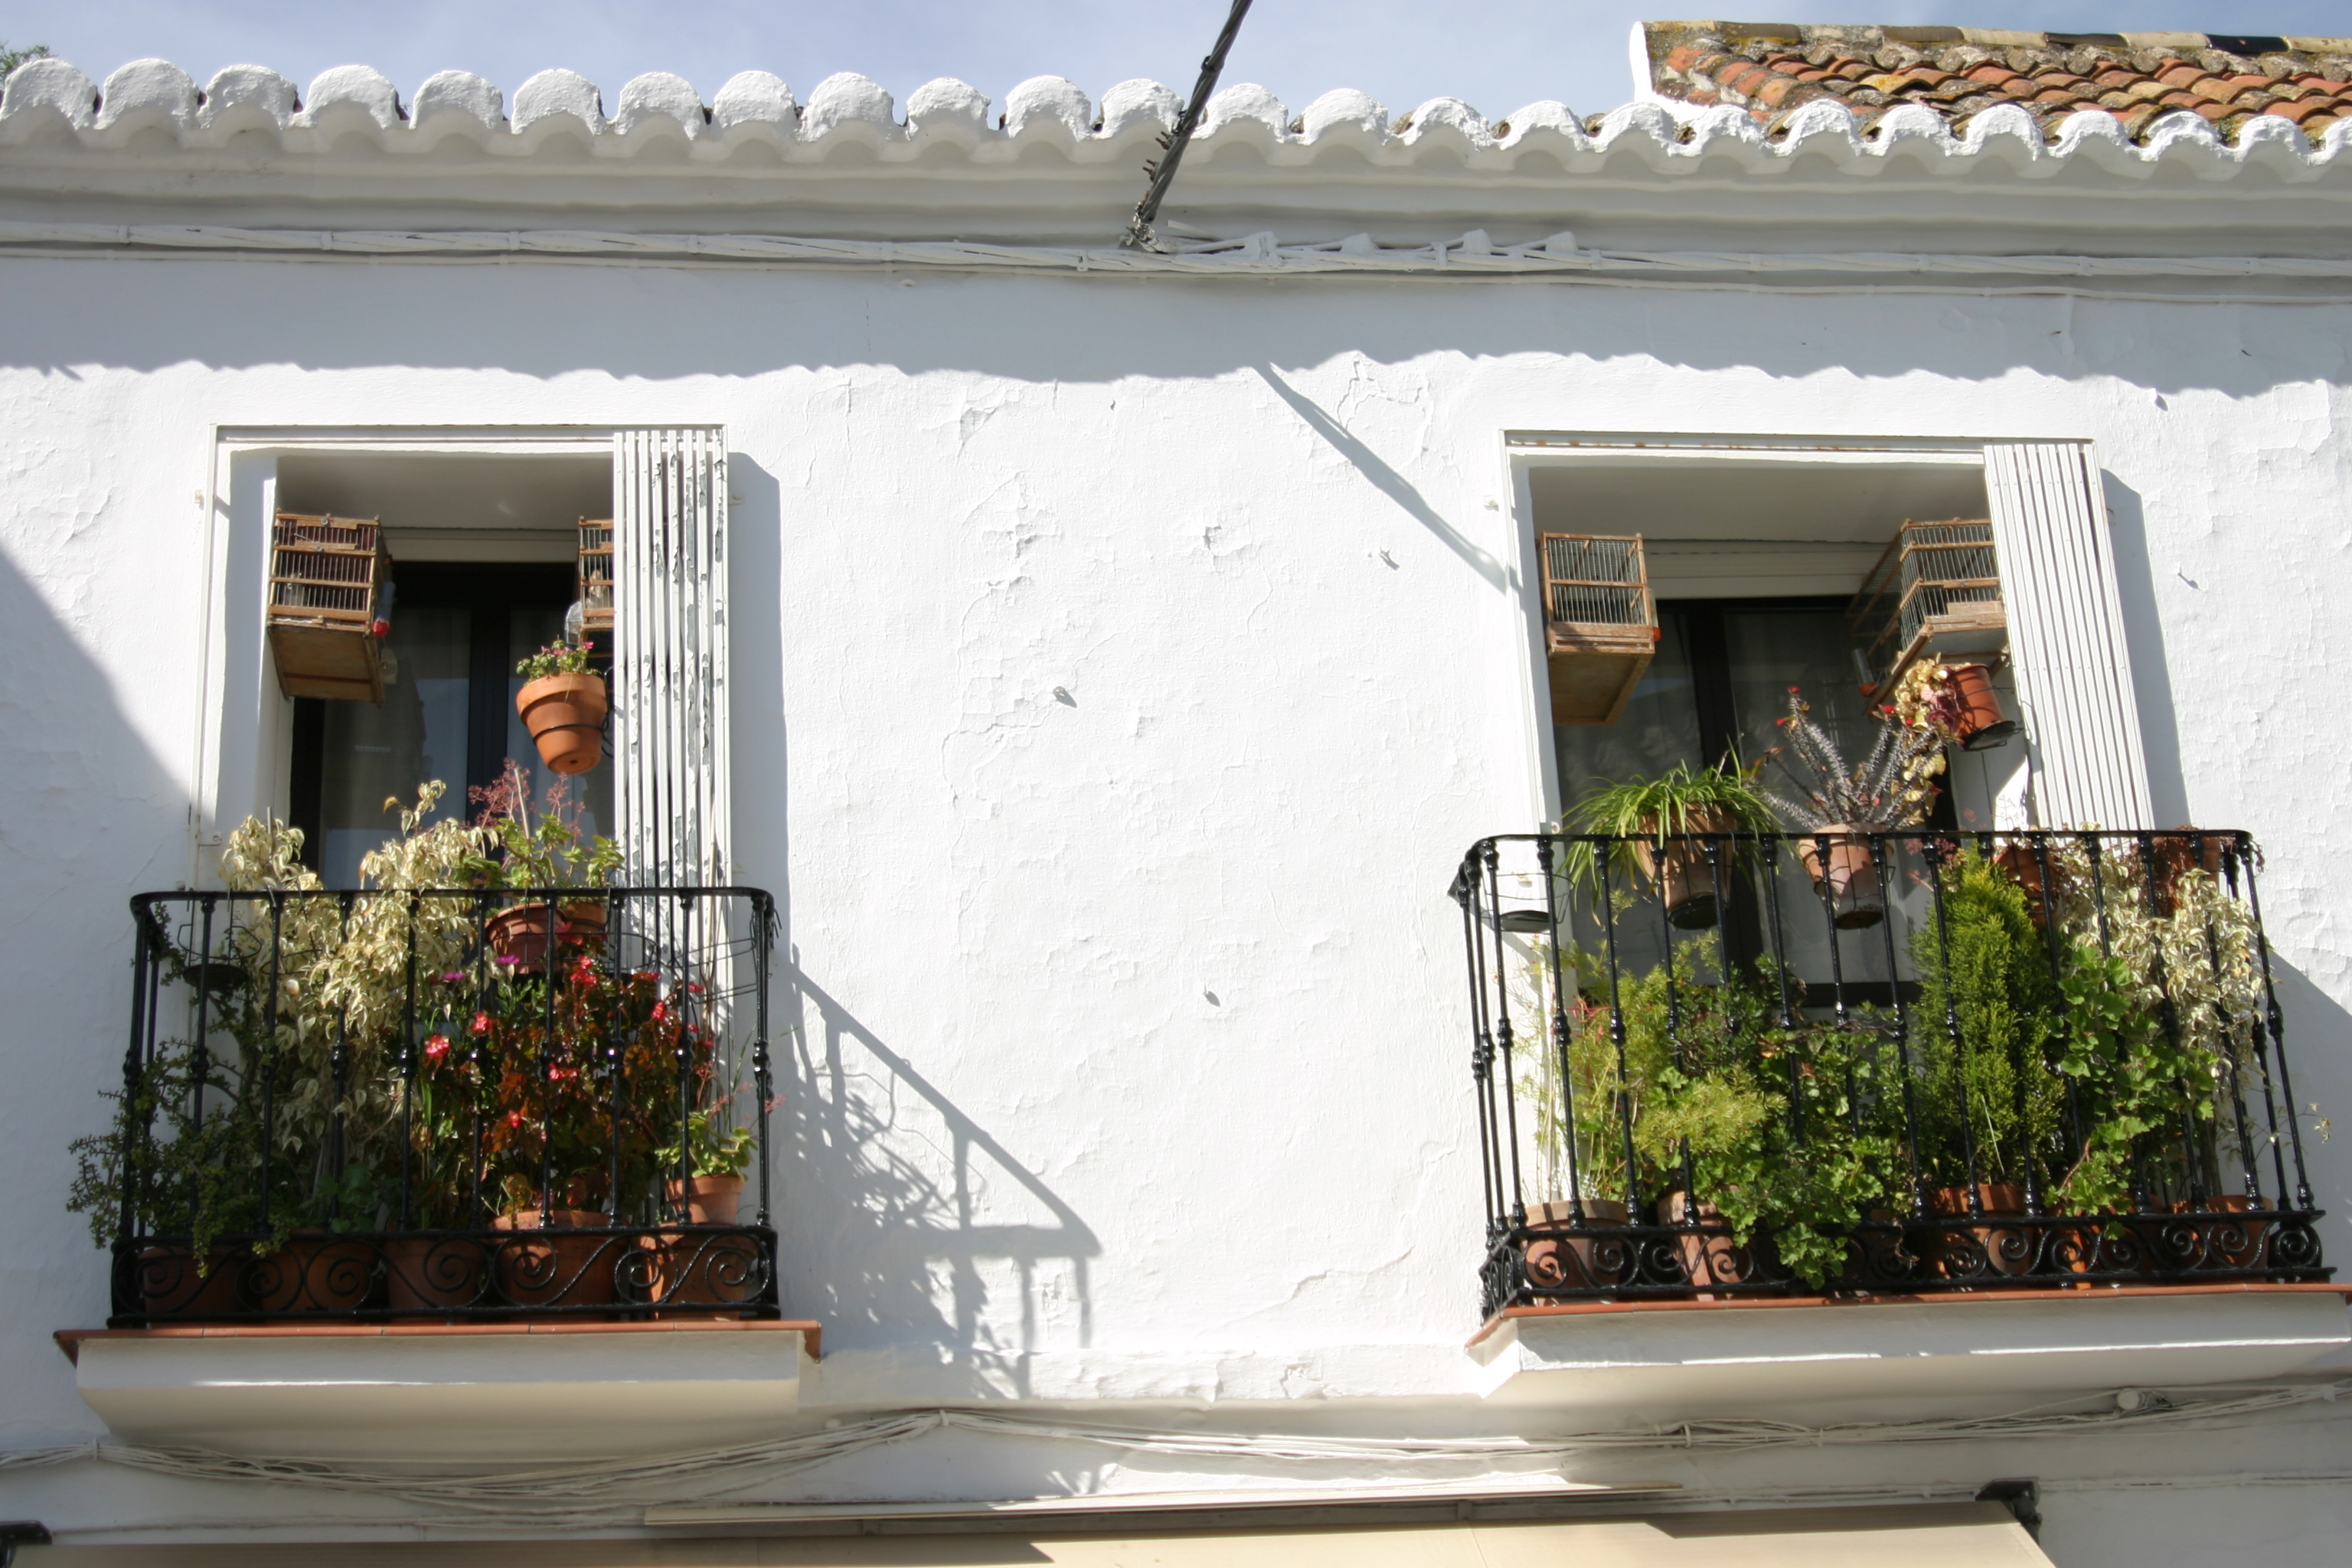 Mijas Pueblo, canary cages and flower pots www.andrewforbes.com